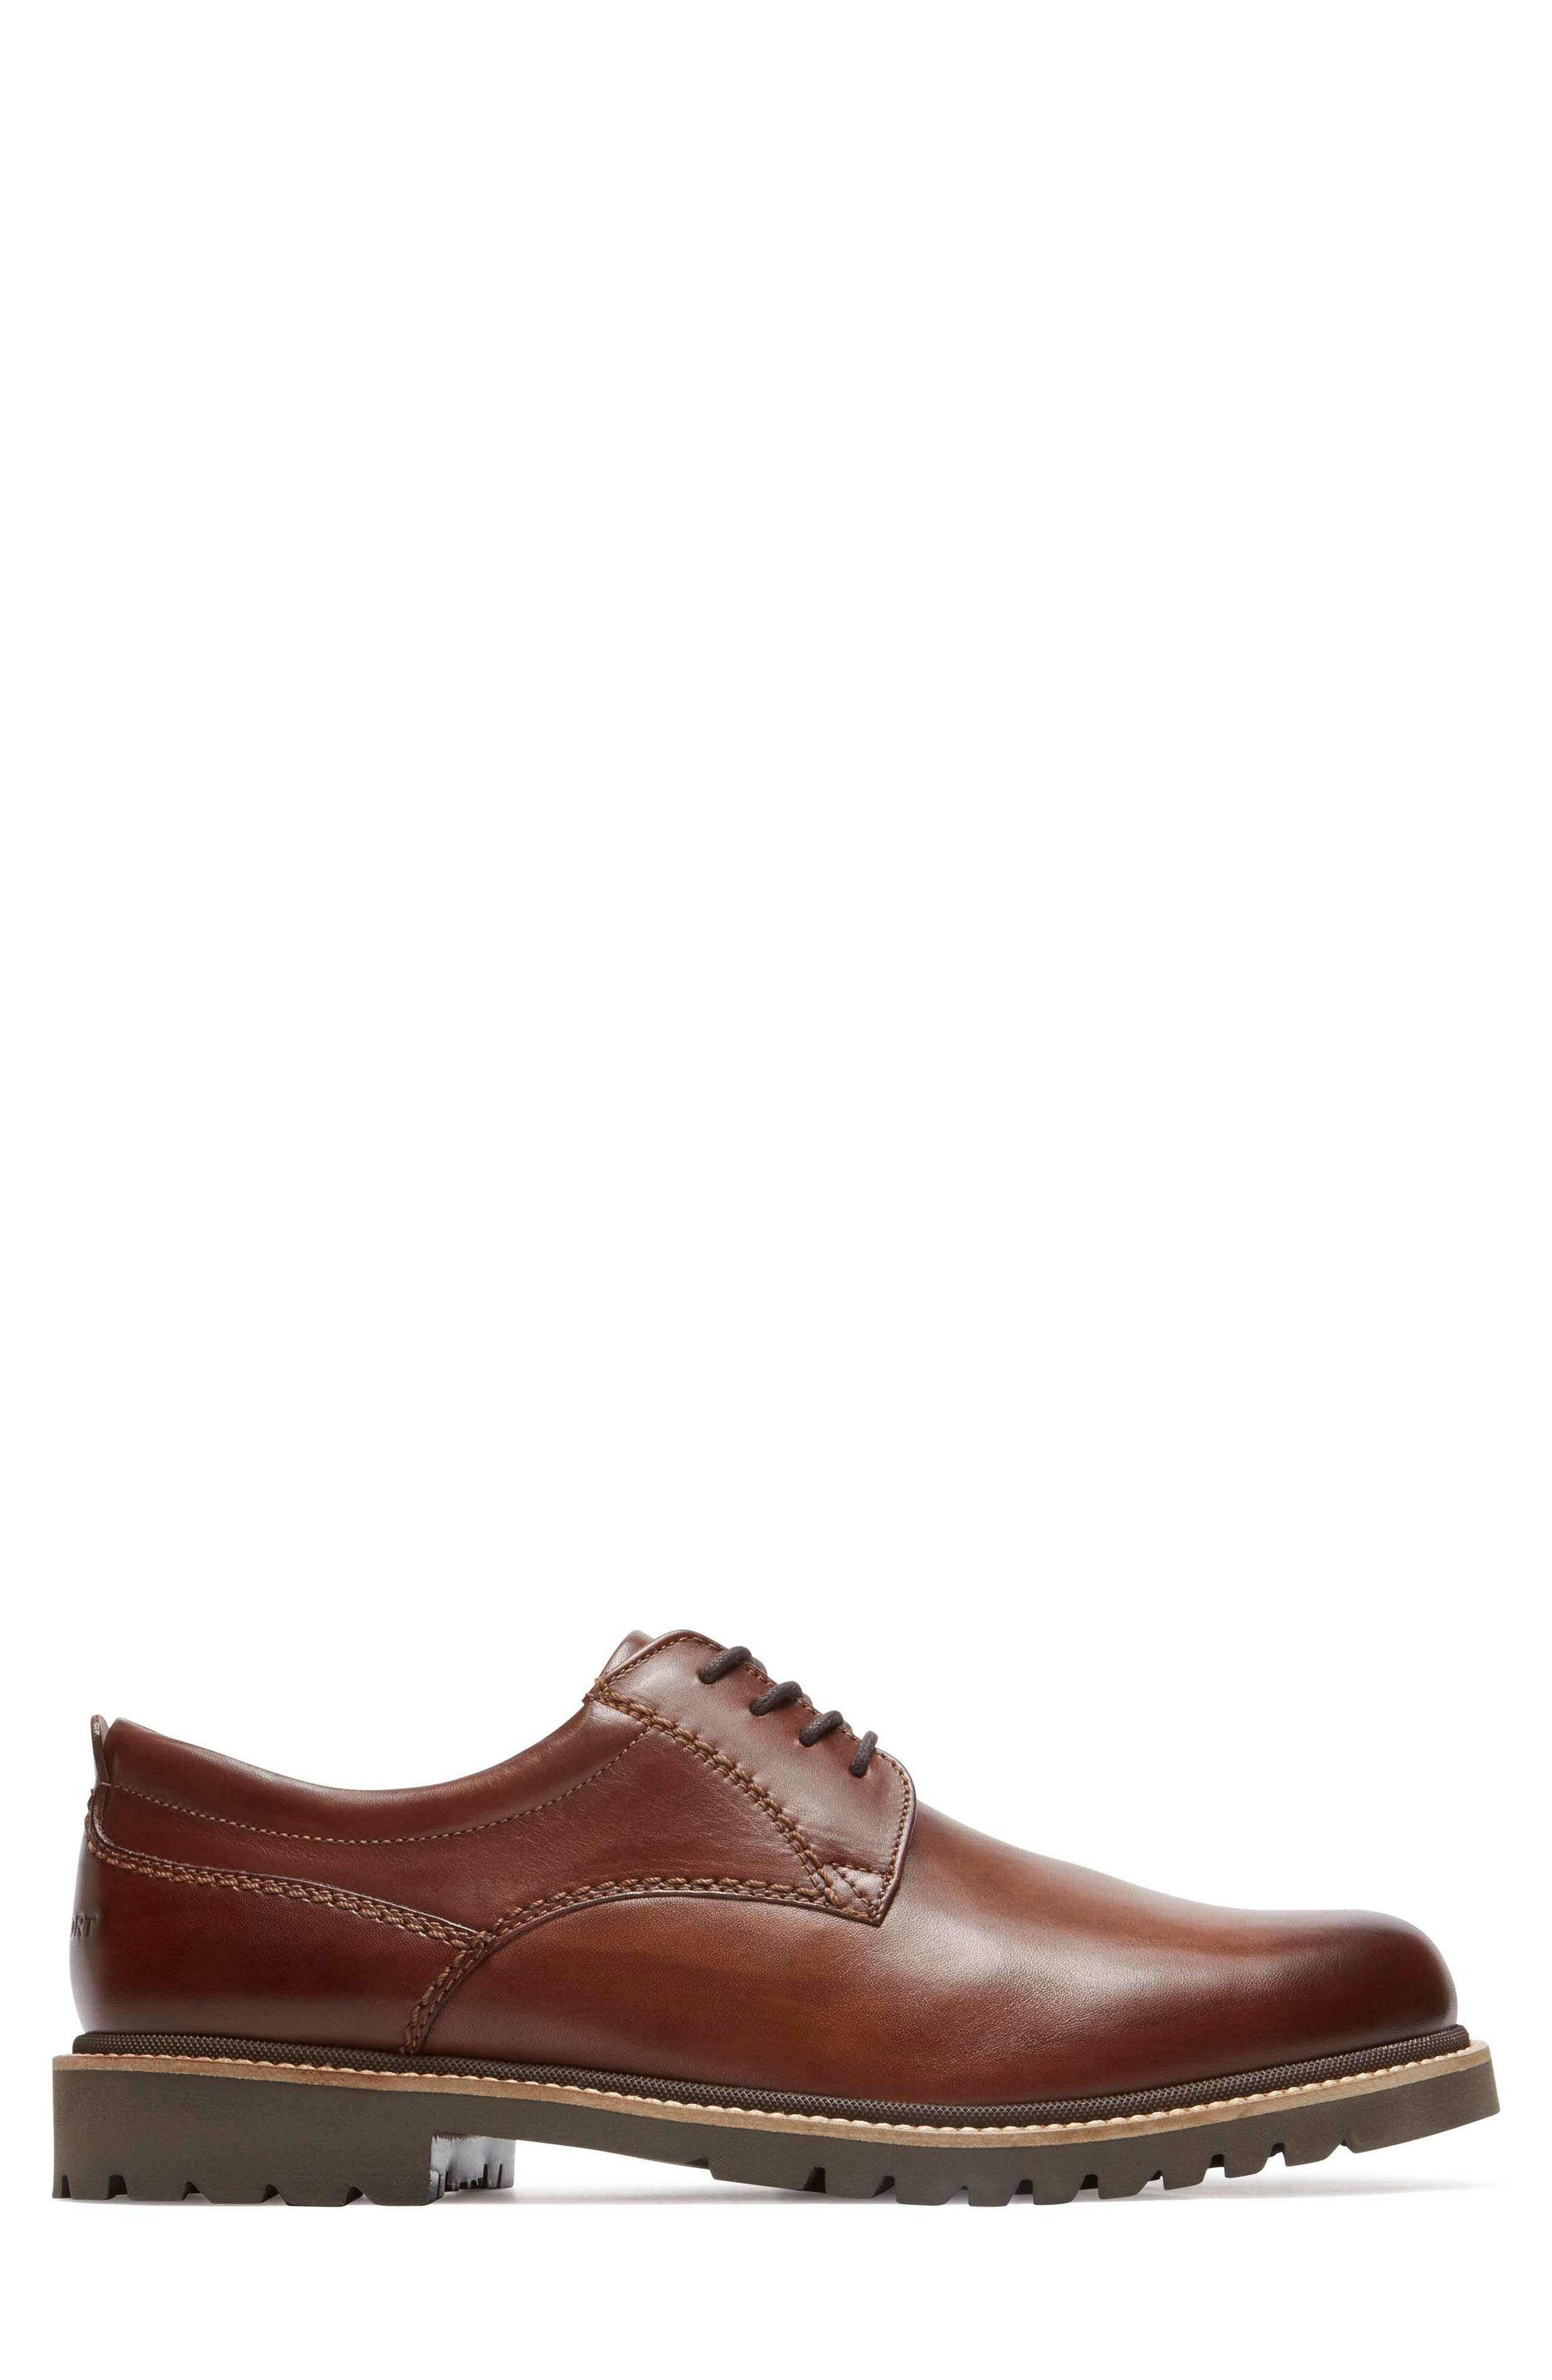 Marshall Buck Shoe,                             Alternate thumbnail 3, color,                             Dark Brown Leather